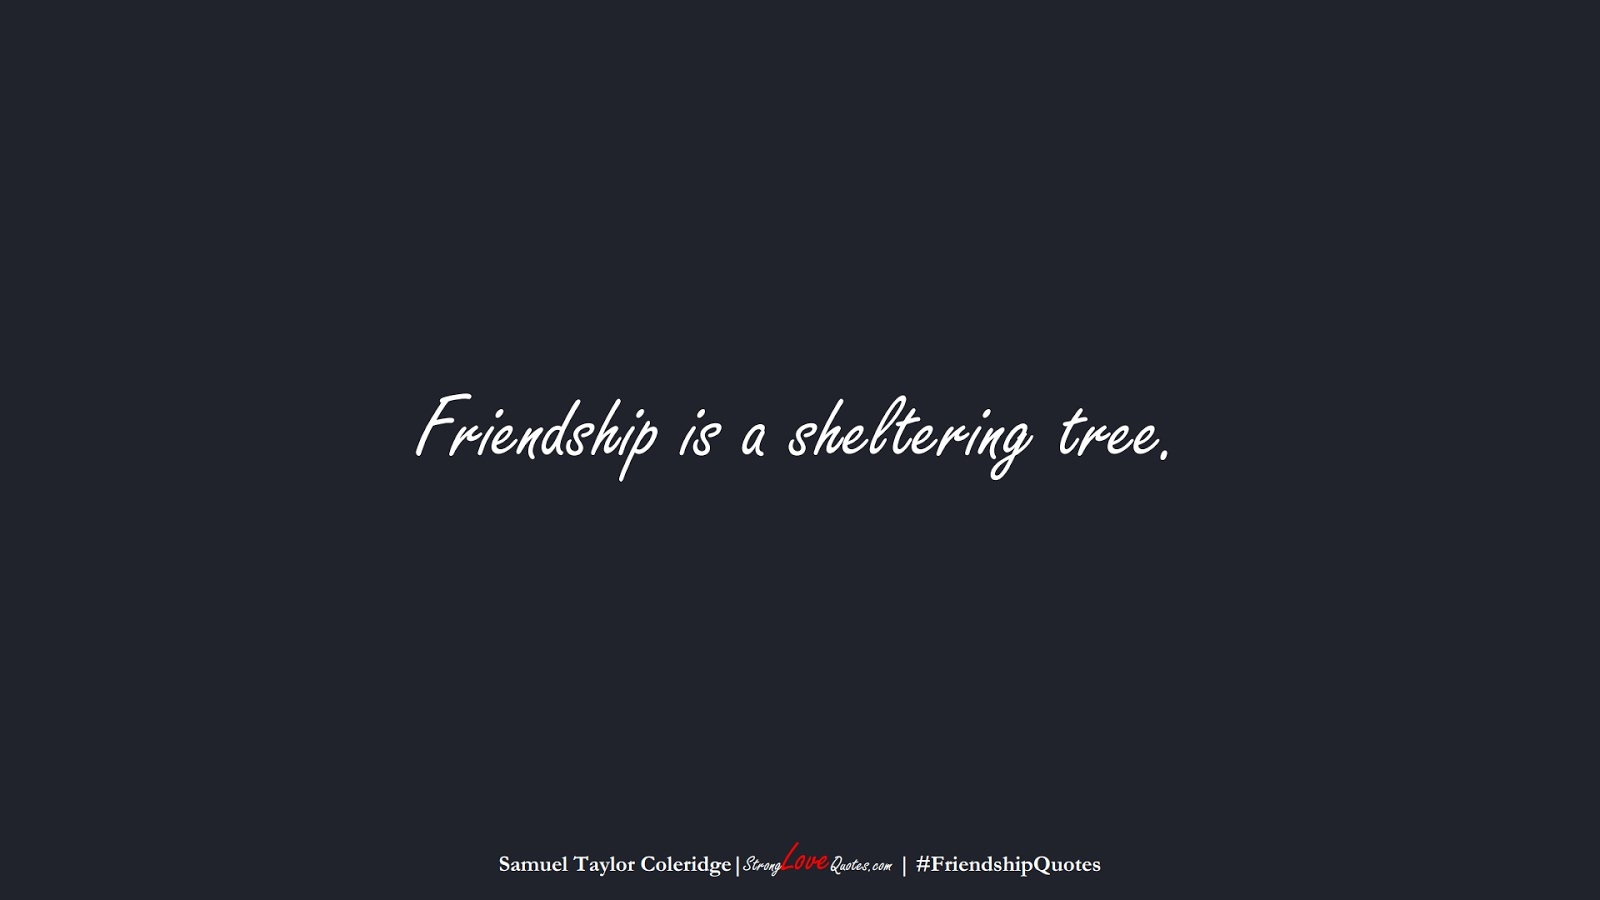 Friendship is a sheltering tree. (Samuel Taylor Coleridge);  #FriendshipQuotes